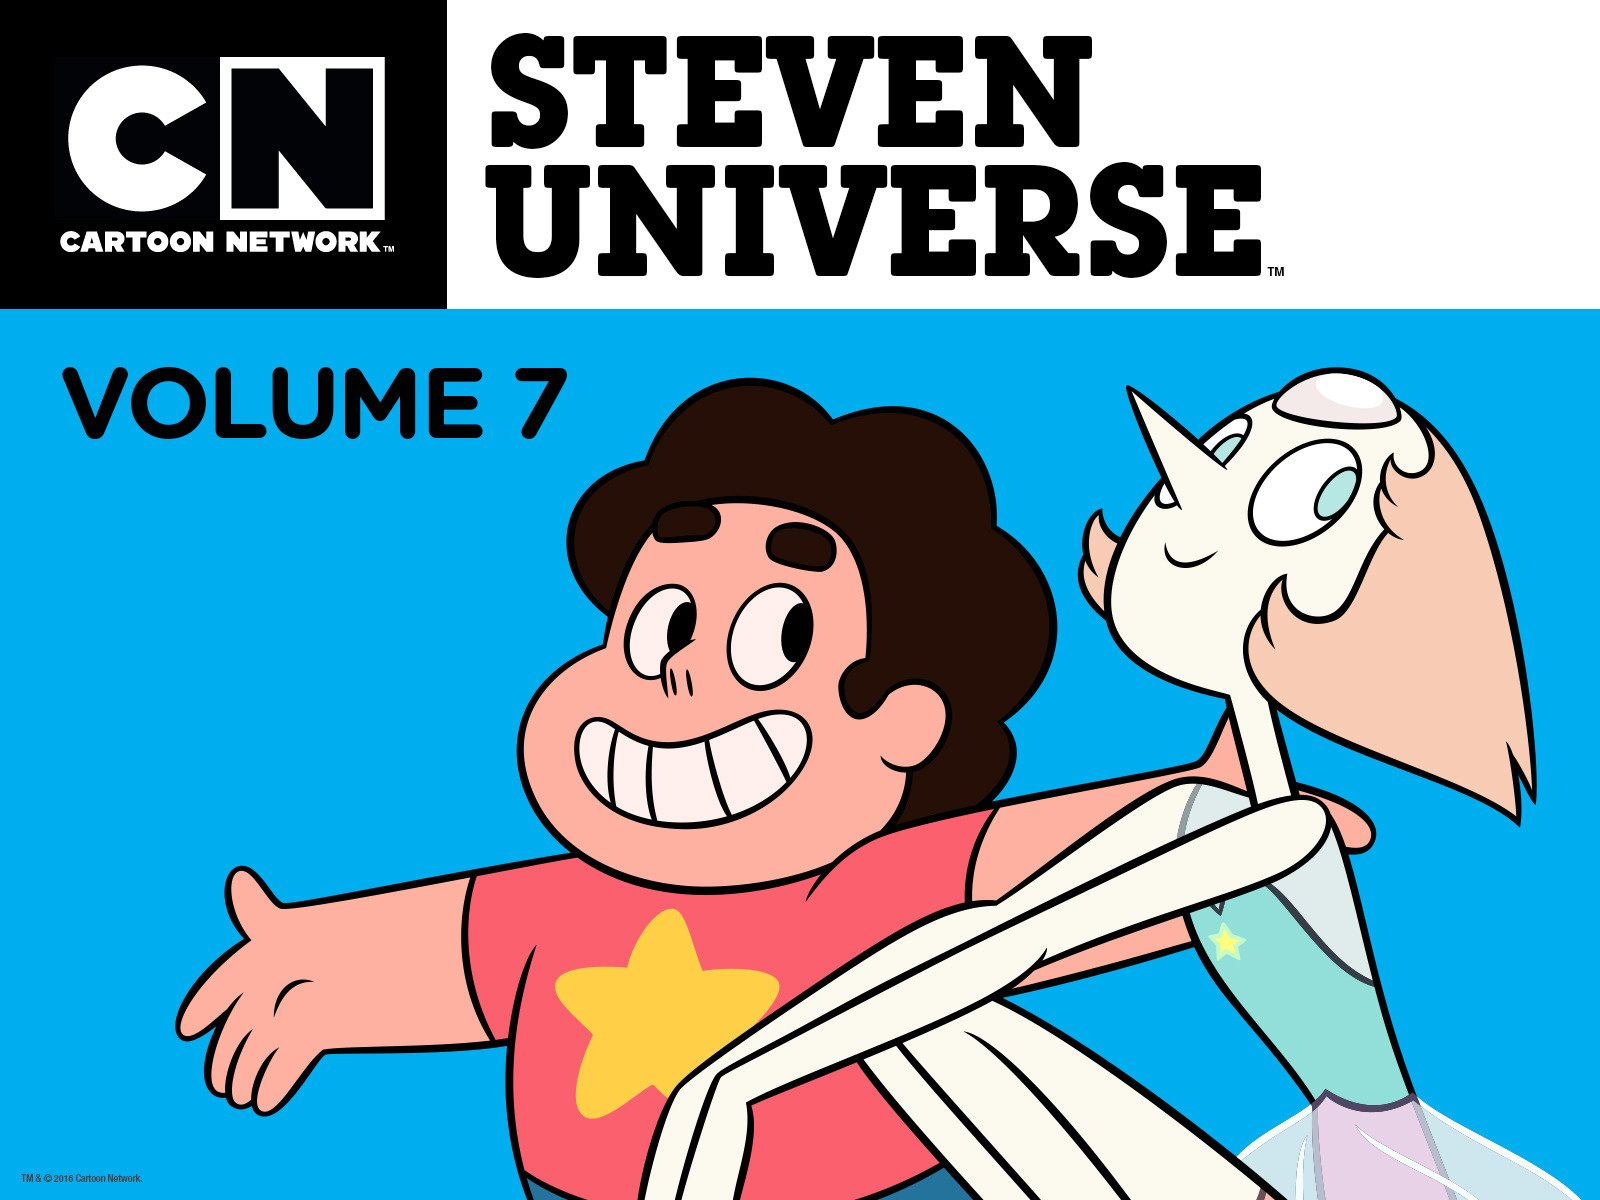 Steven universe episode 43 online dating